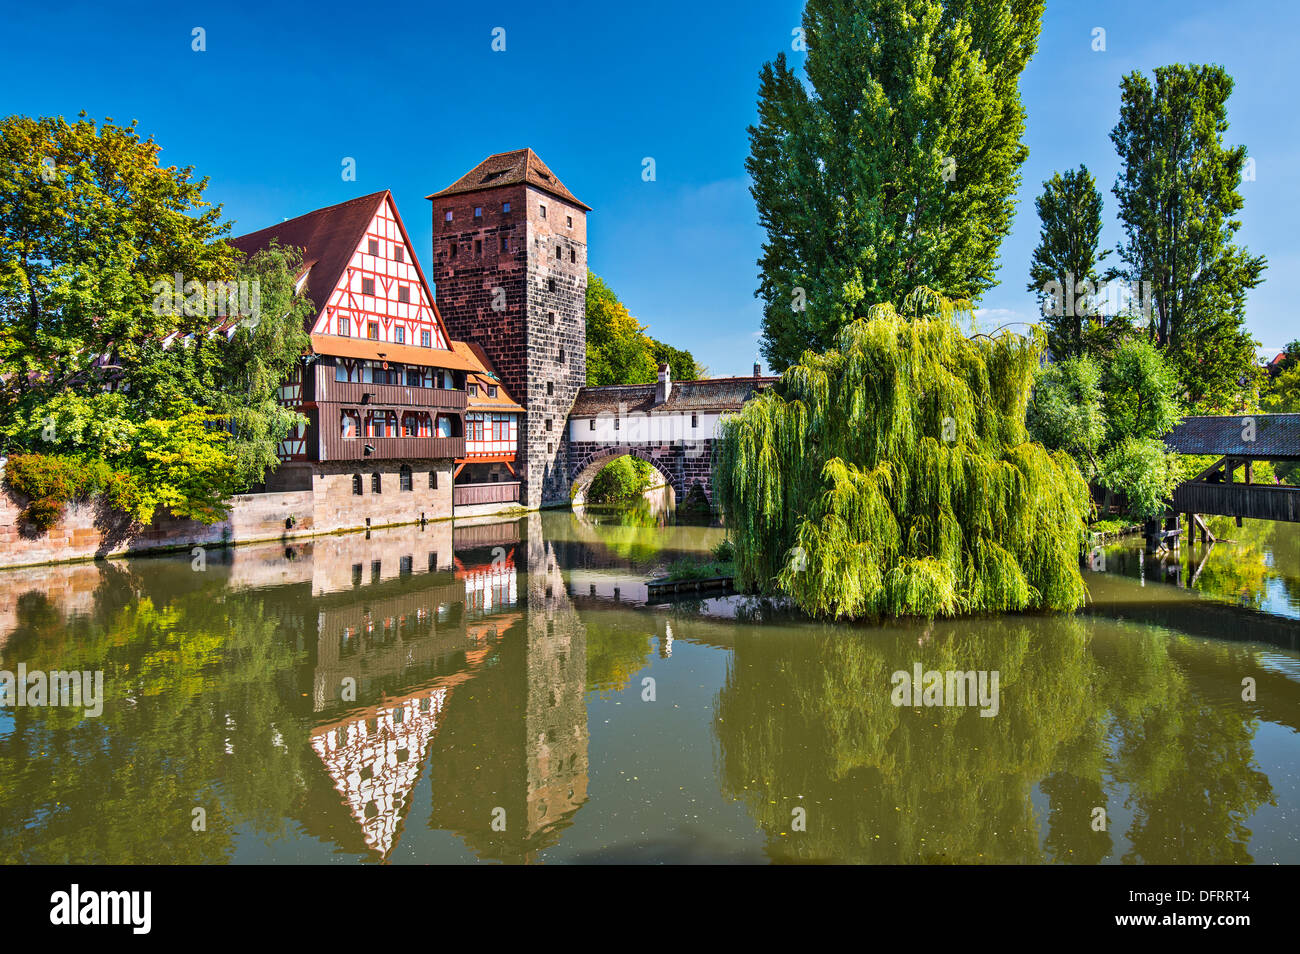 Executioner's bridge in Nuremberg, Germany - Stock Image